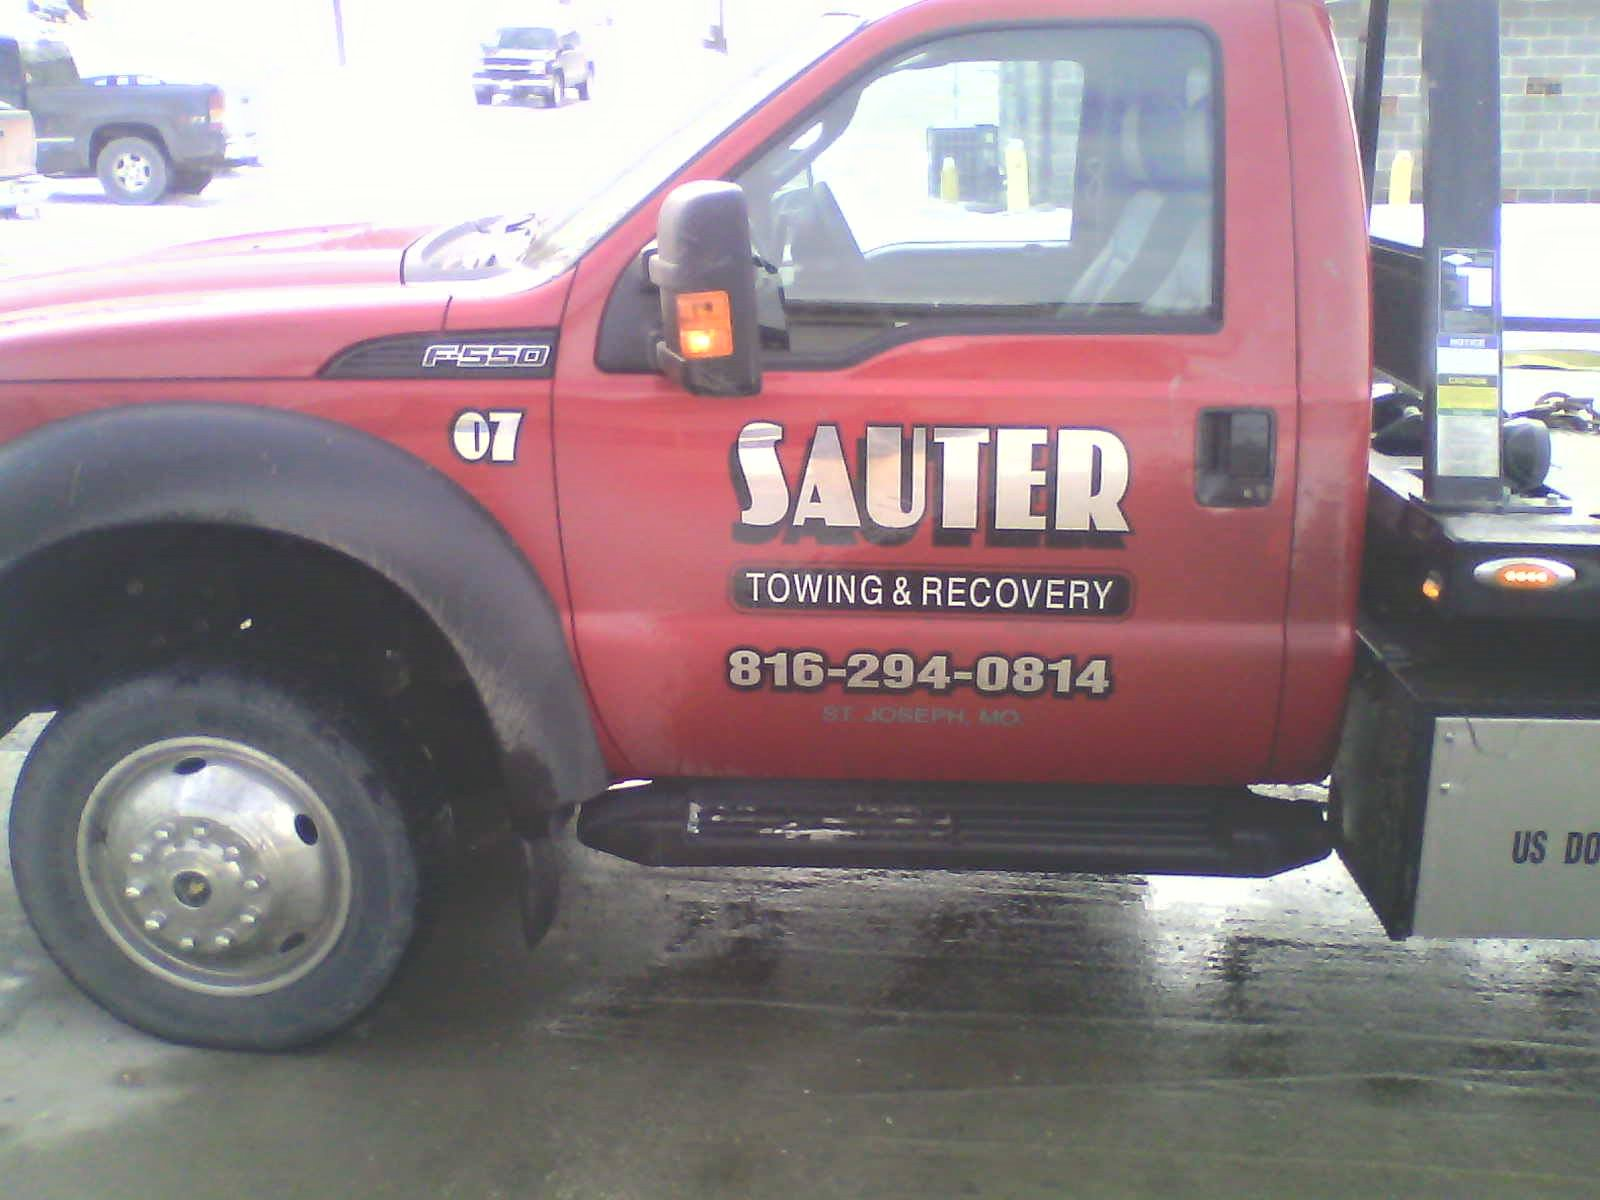 SAUTER TOWING AND RECOVERY